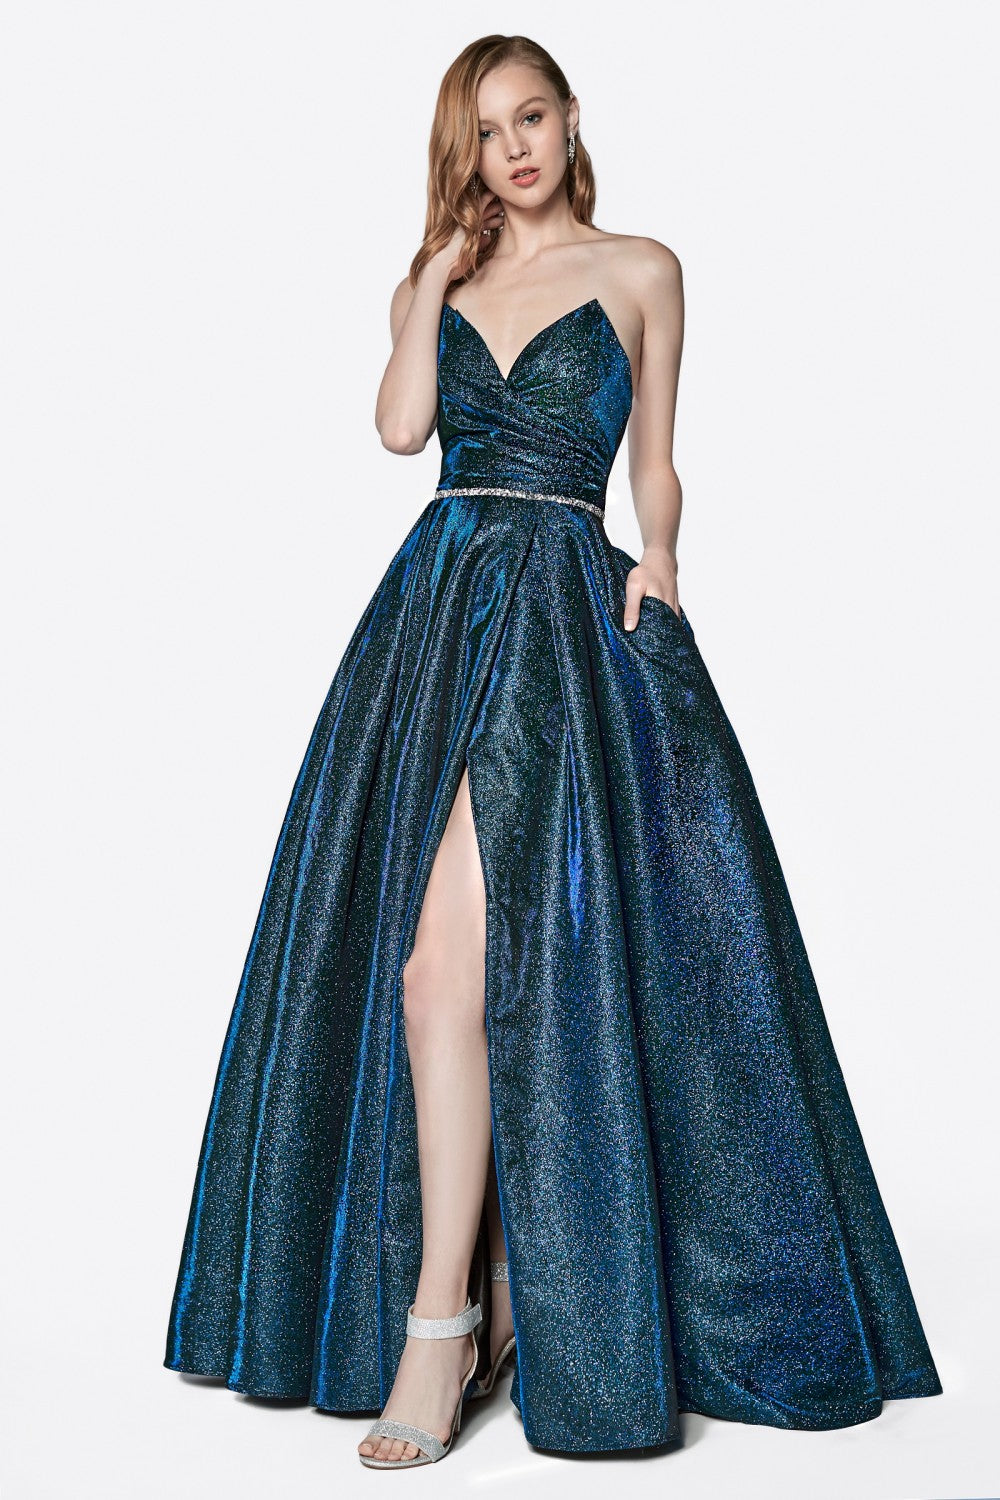 Strapless Glitter Gown With Point Sweetheart Neckline And Leg Slit